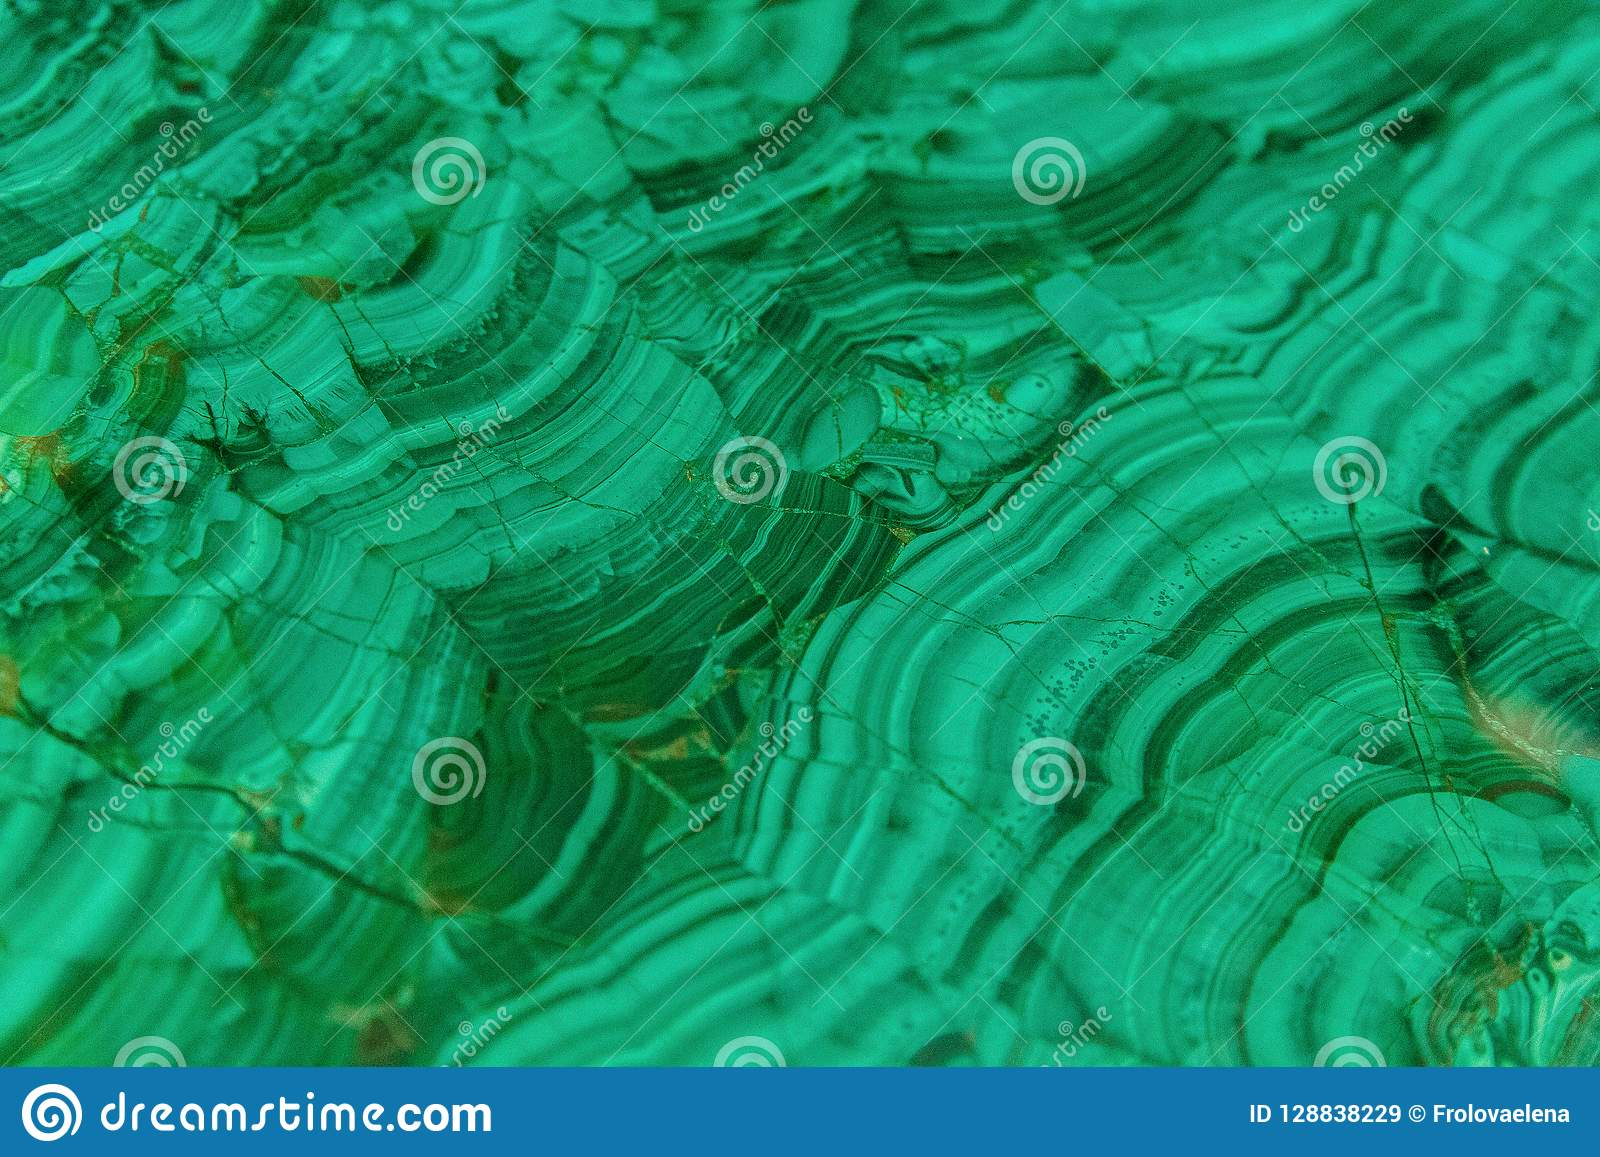 Texture Of Marble Stone With Dark Green Streaks Background Stock Image Image Of Granite Emerald 128838229